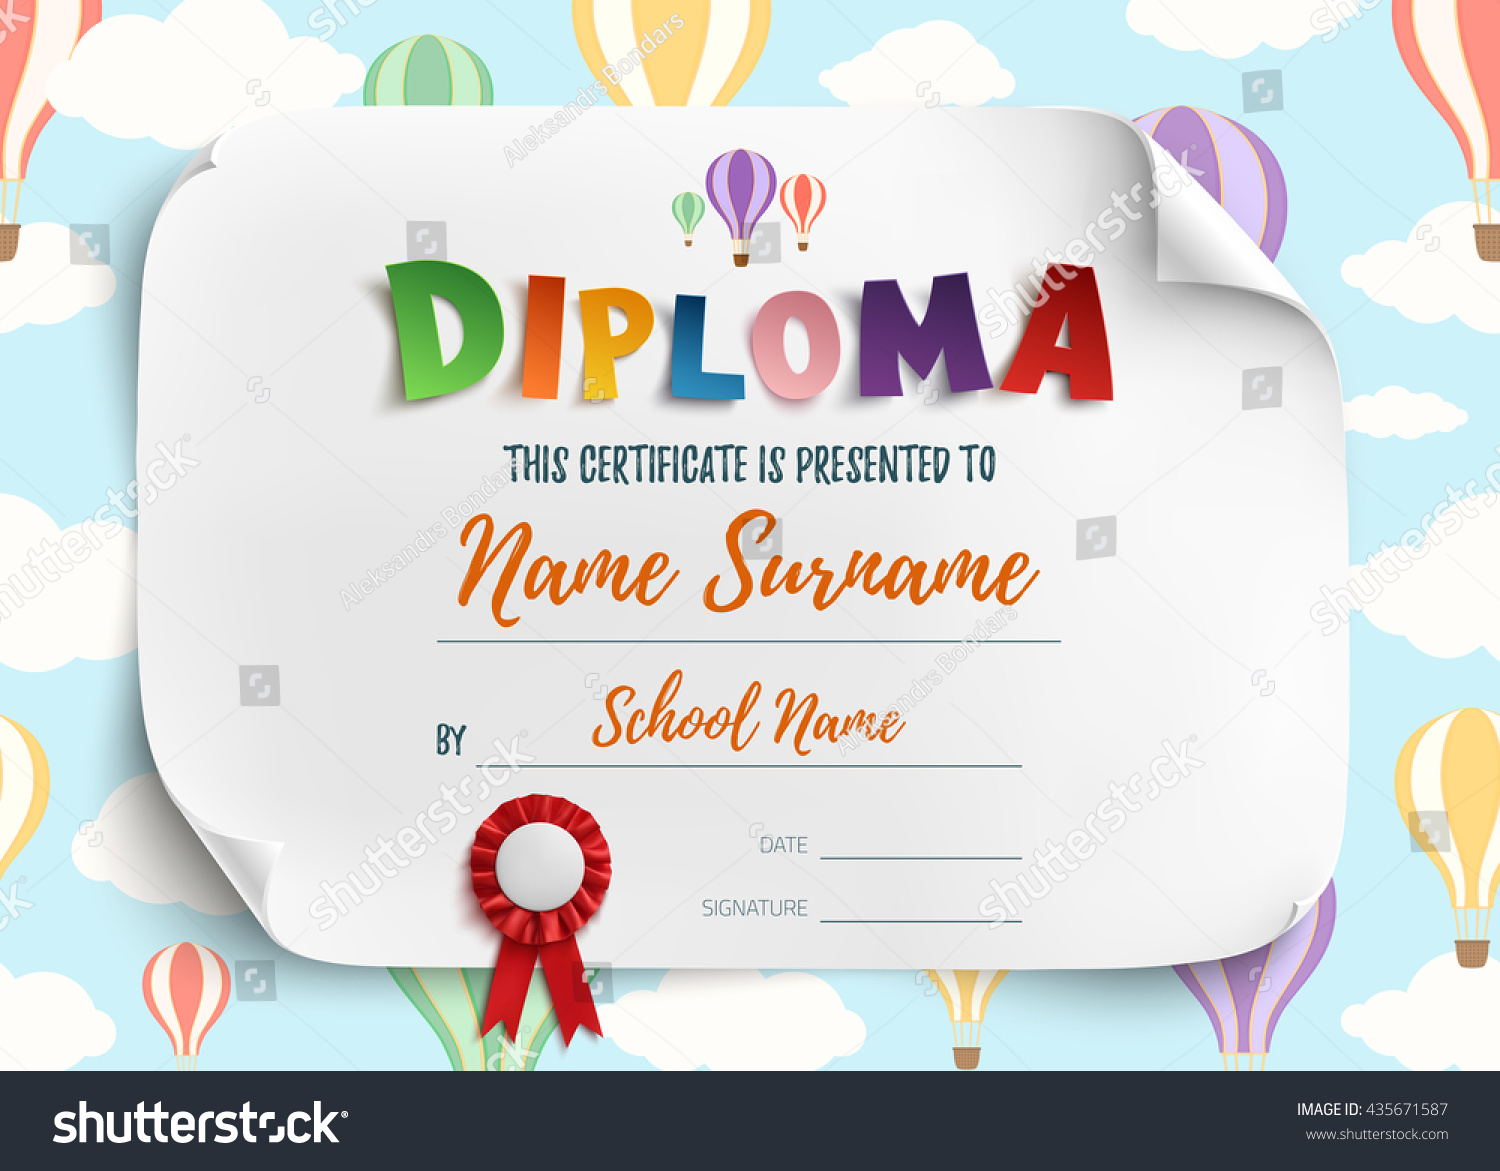 Diploma Template Kids Certificate Background Air Vector de stock ...